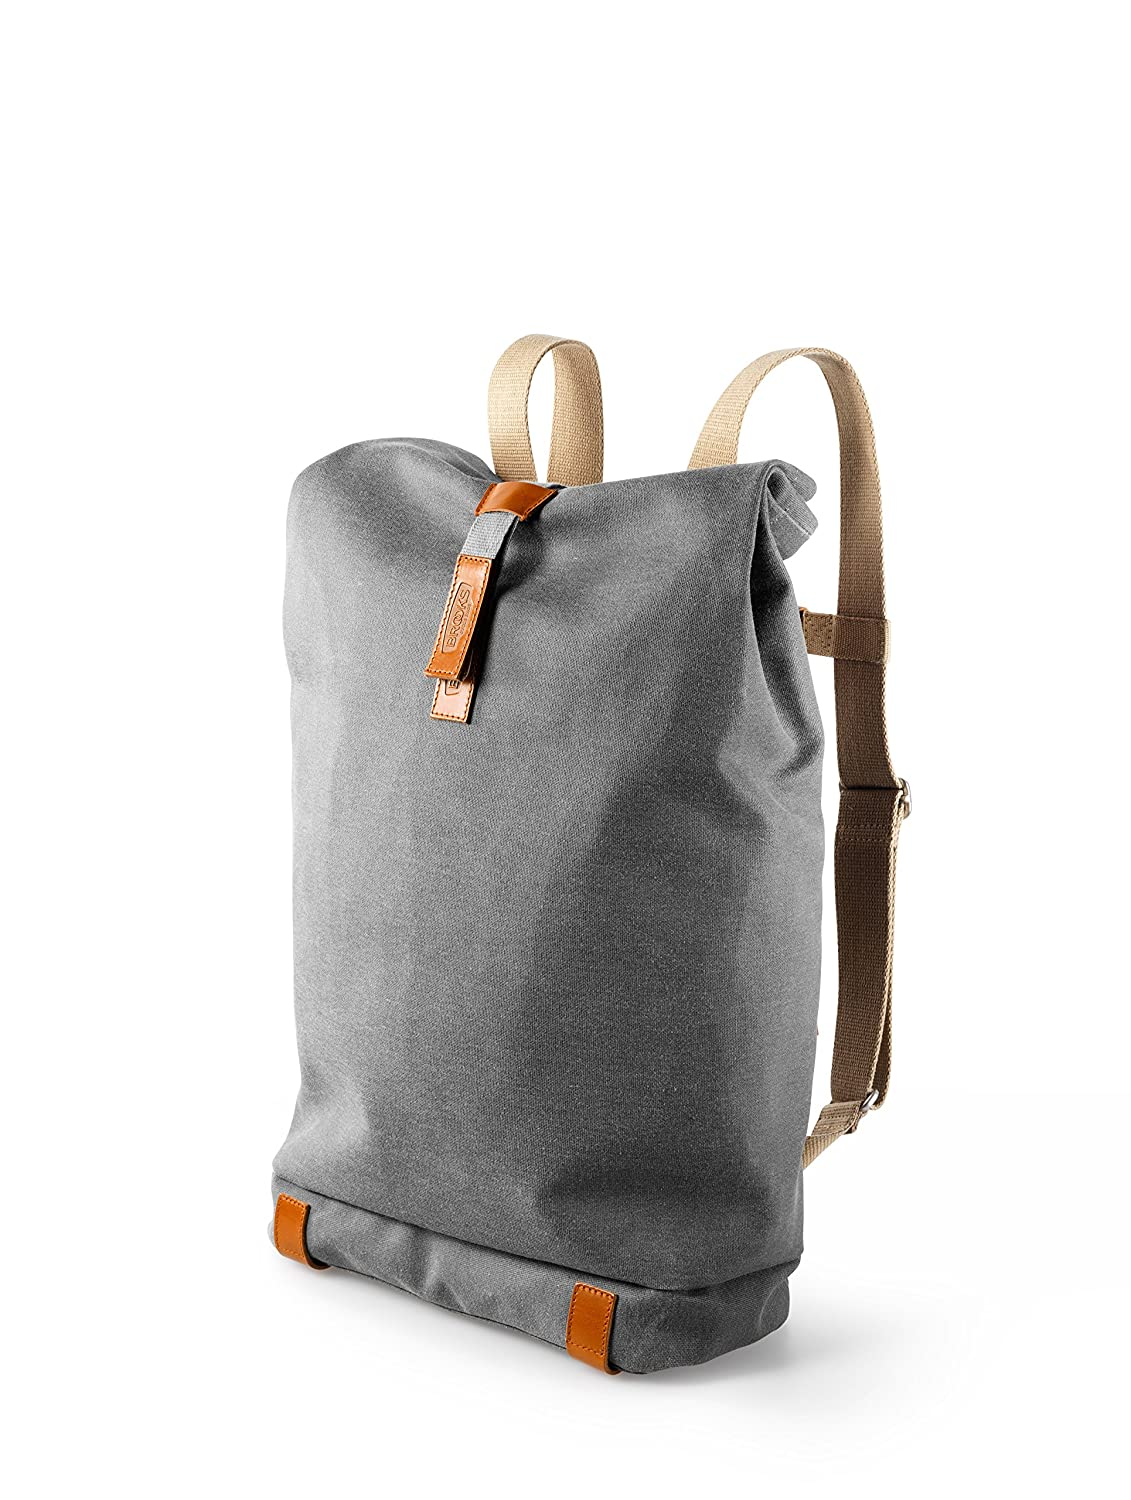 Brooks Pickwick Day Pack - (Small / 12 Liter) - Grey/Honey by Brooks   B01CPY1CHI